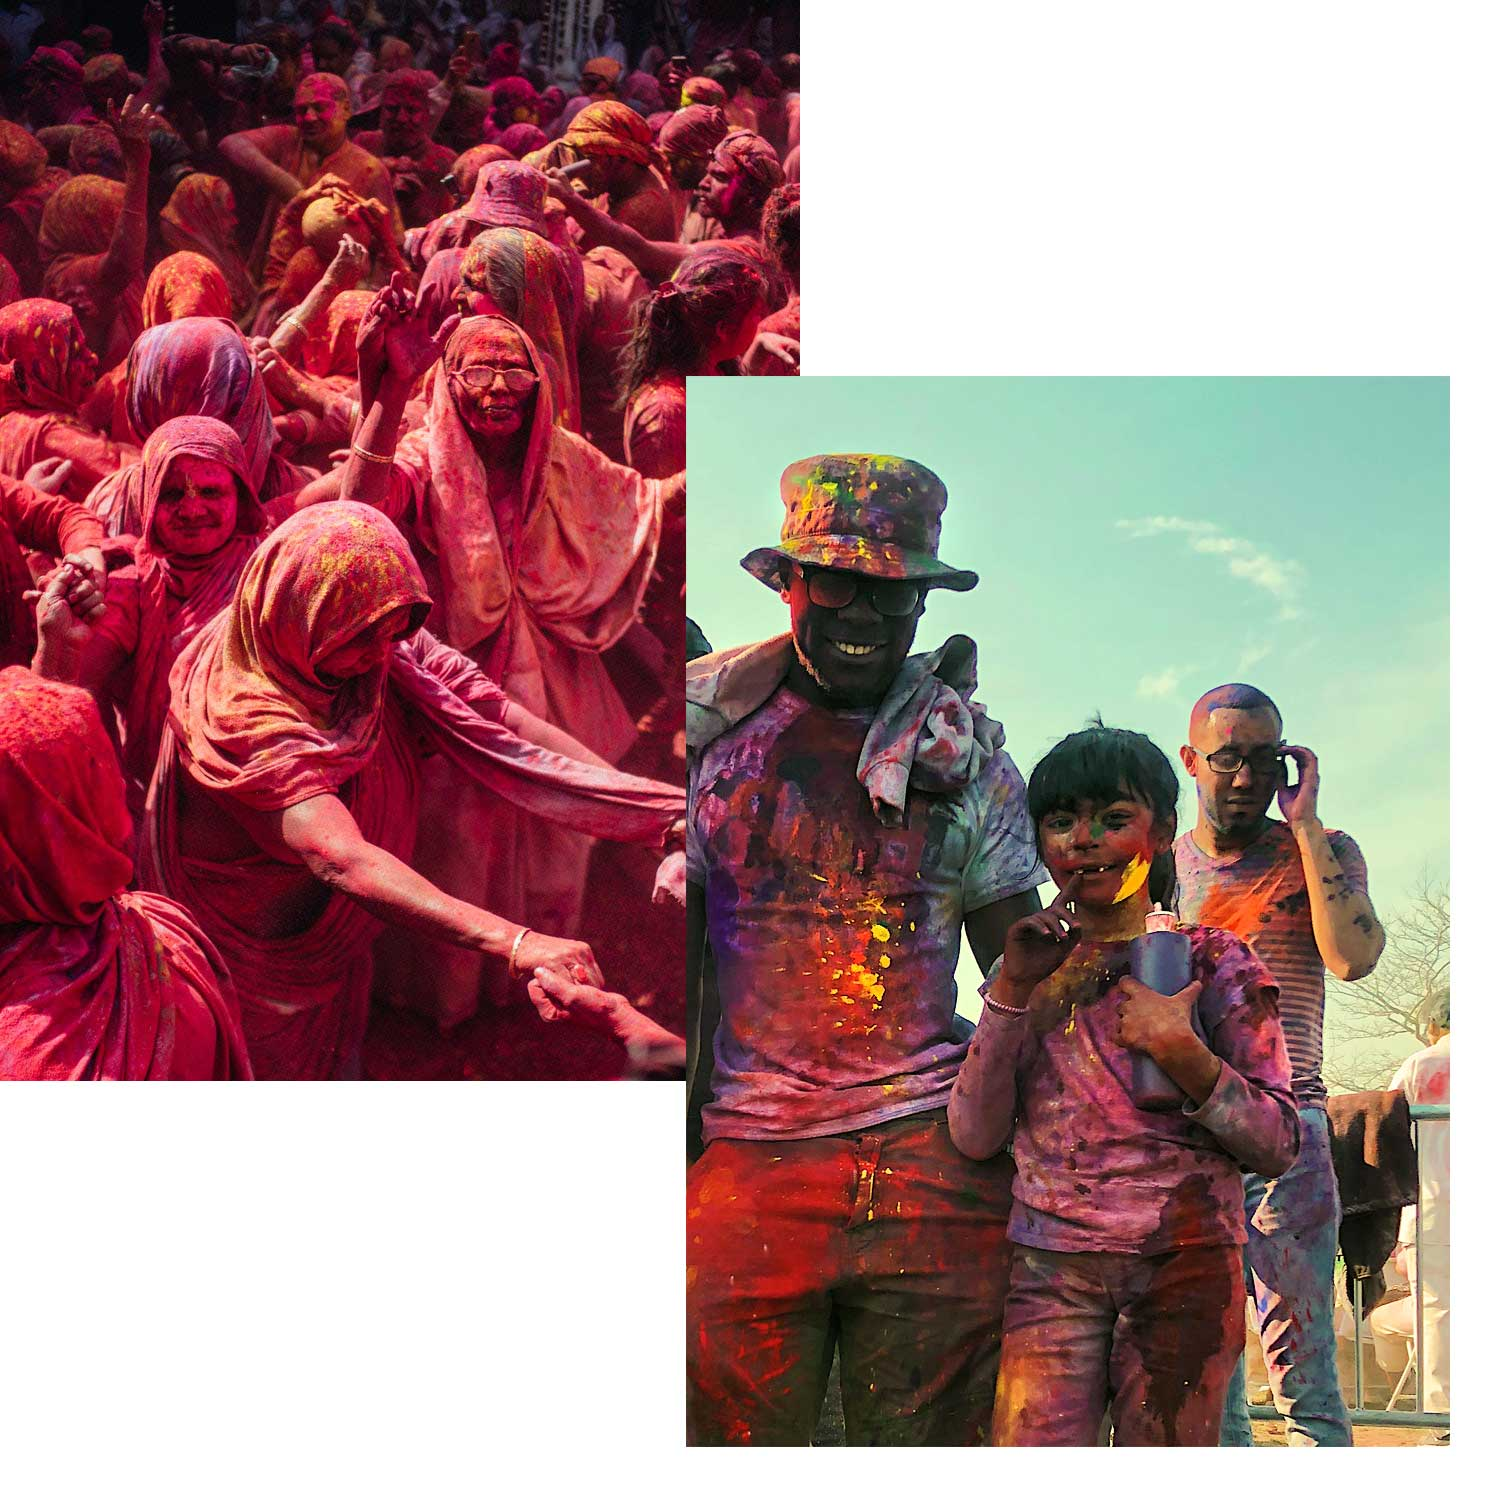 holi-festival-queens-new-york-city.jpg